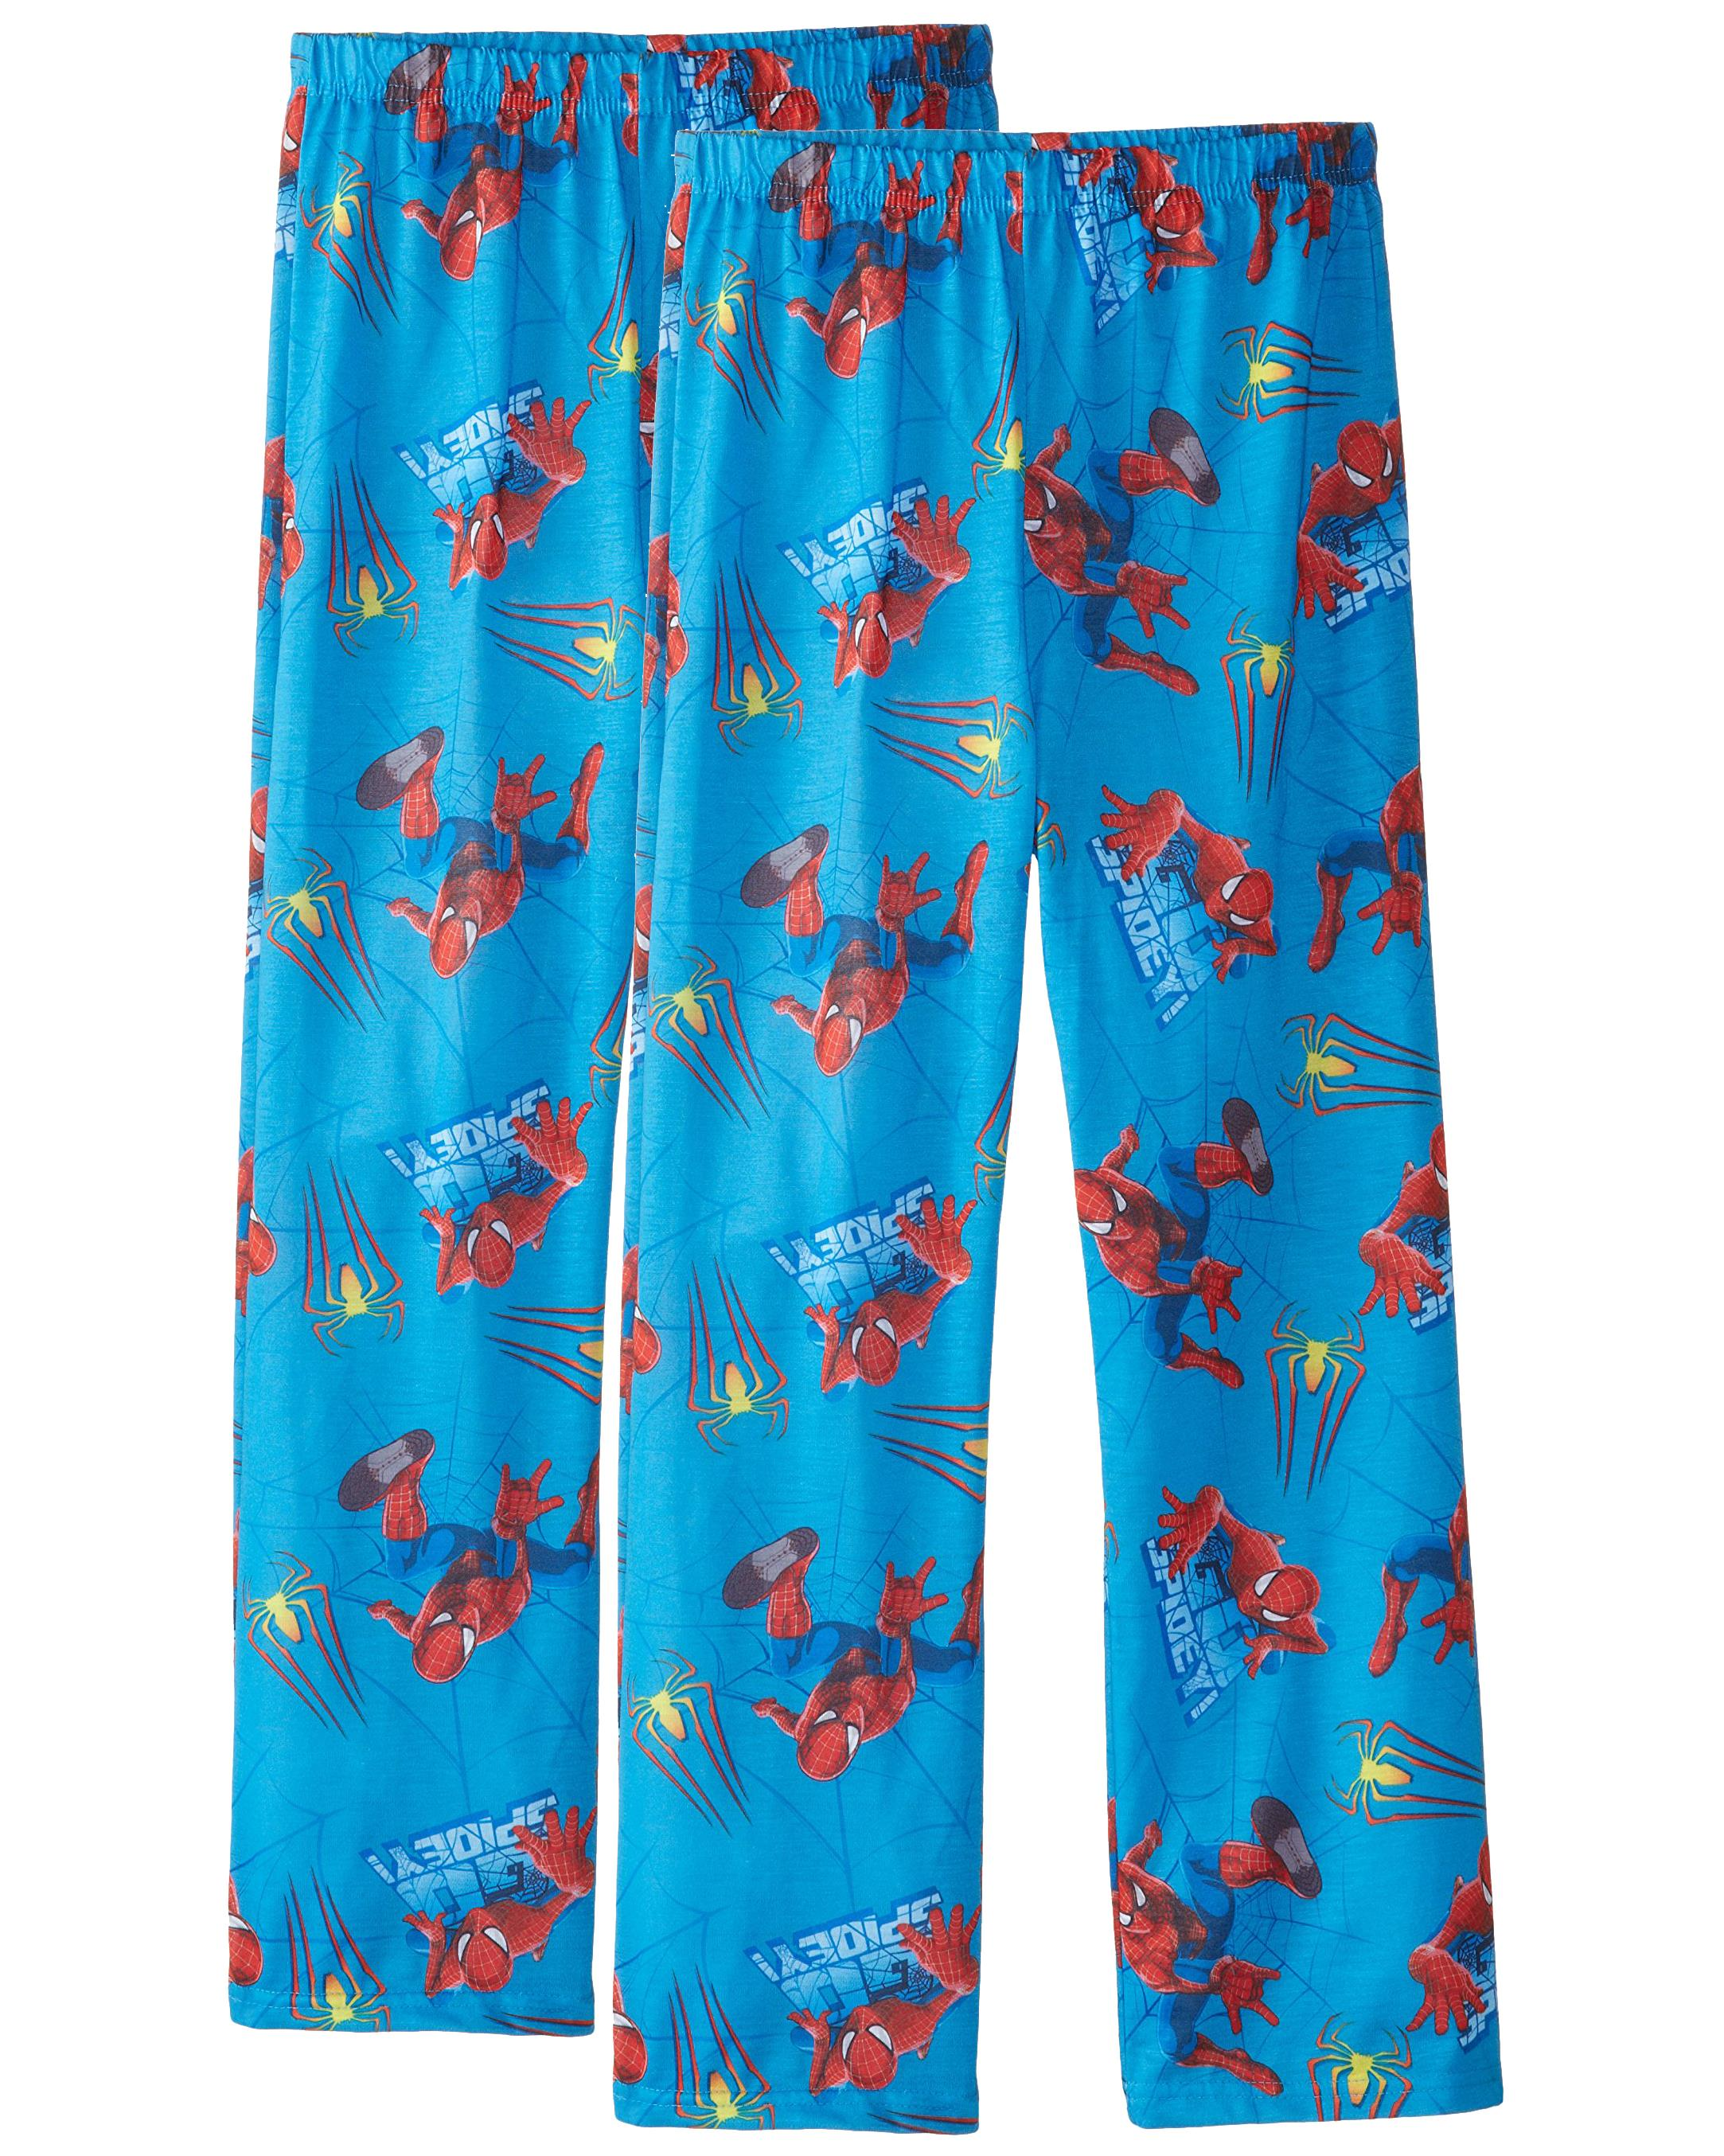 Spider-Man Boys Blue Pajama Pants, Sizes 4-10, 2 Pack, Size: Small / 4-5